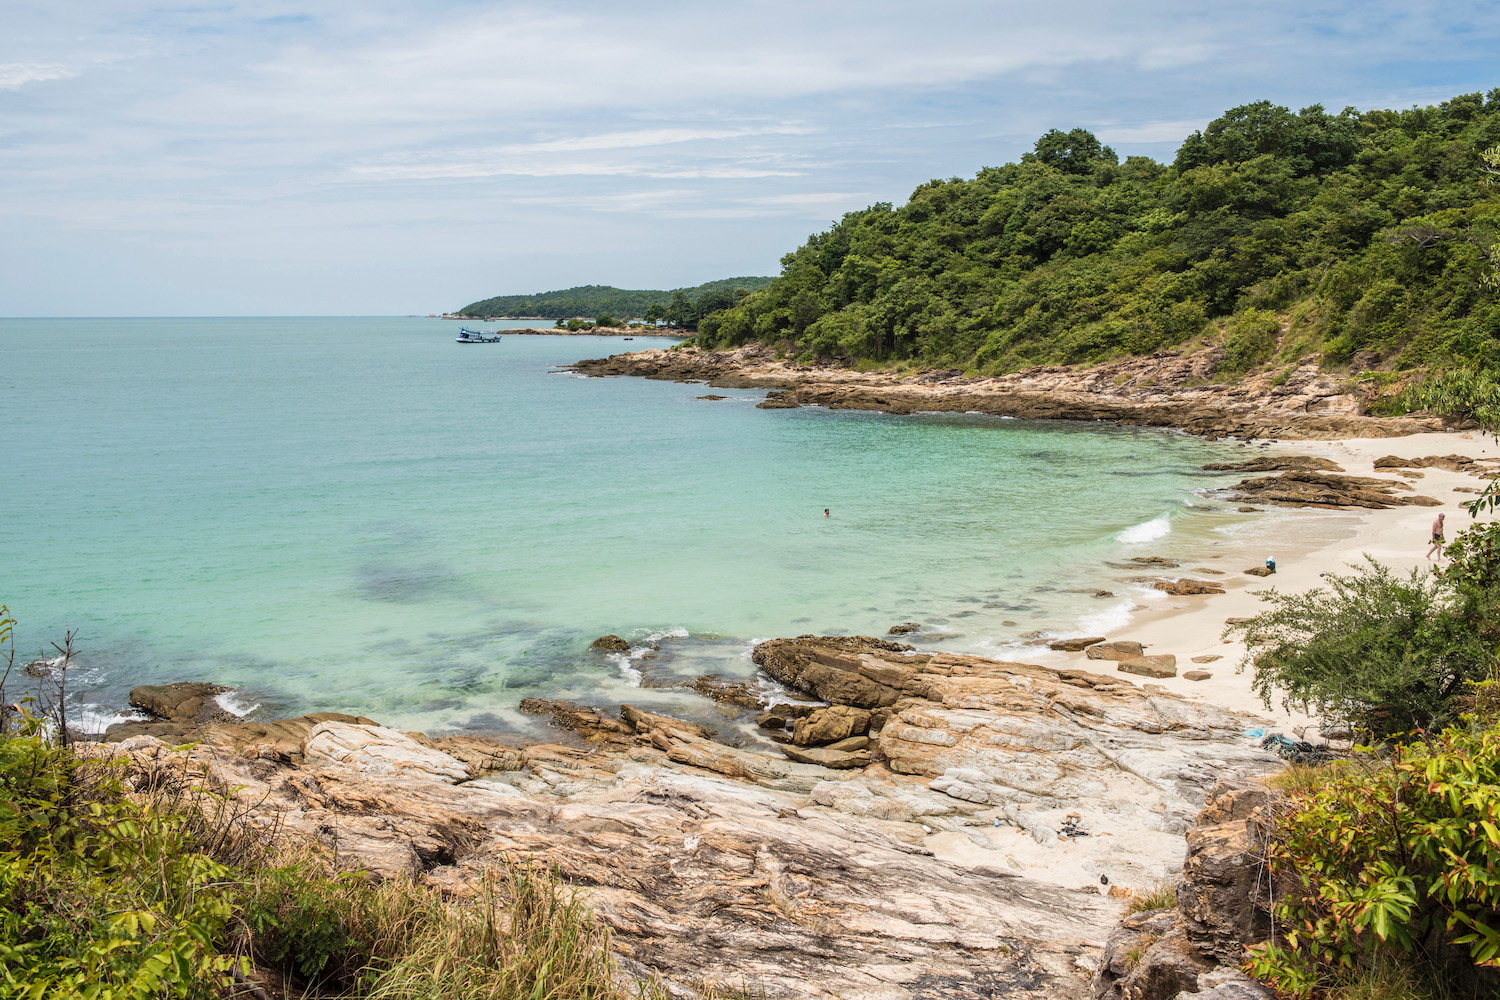 Koh Samet in Thailand, Koh Samet in Thailand for beaches and relaxation time